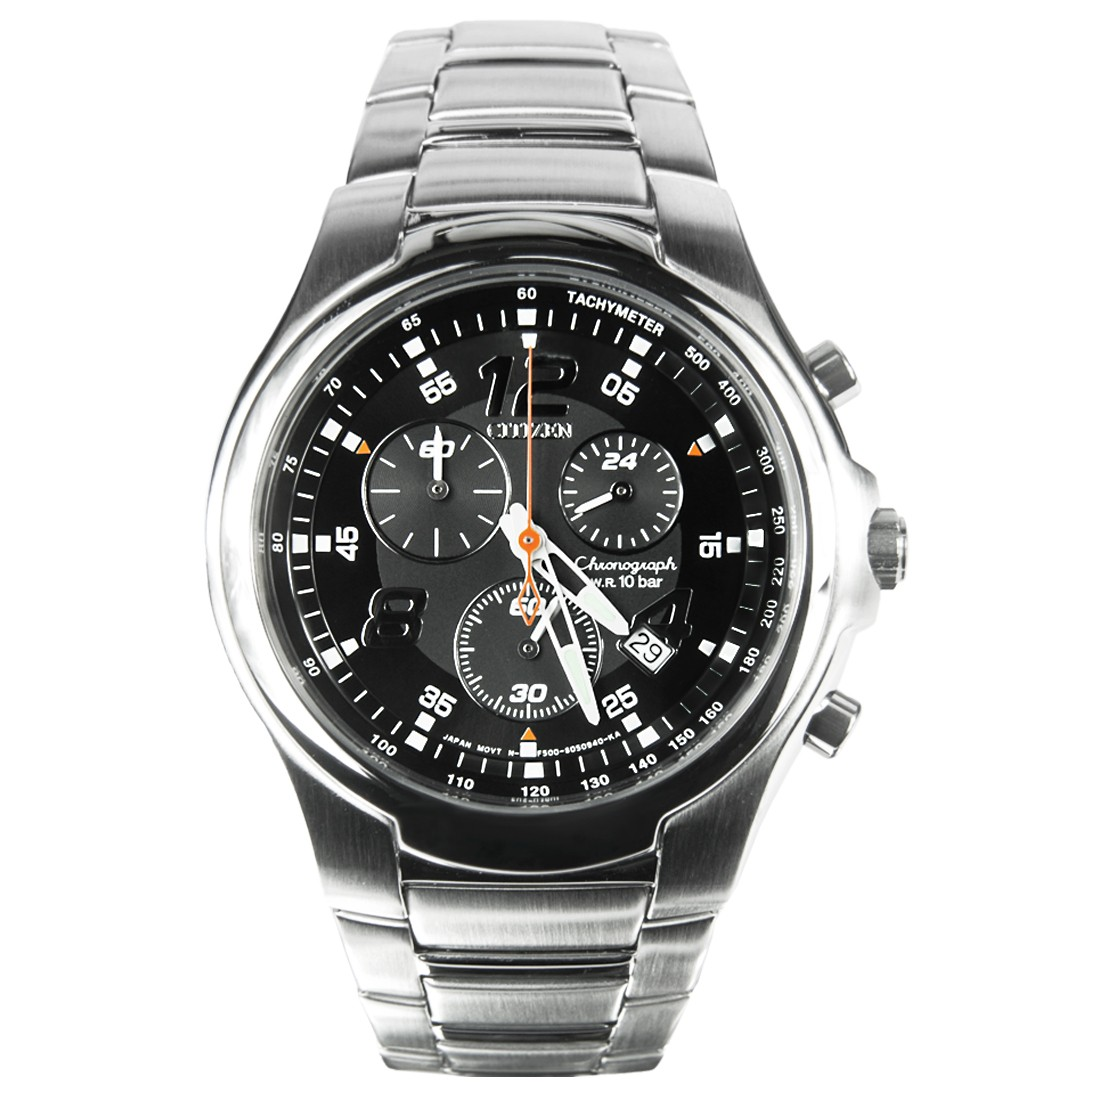 Citizen Chronograph Men's Watch รุ่น AN7010-51E